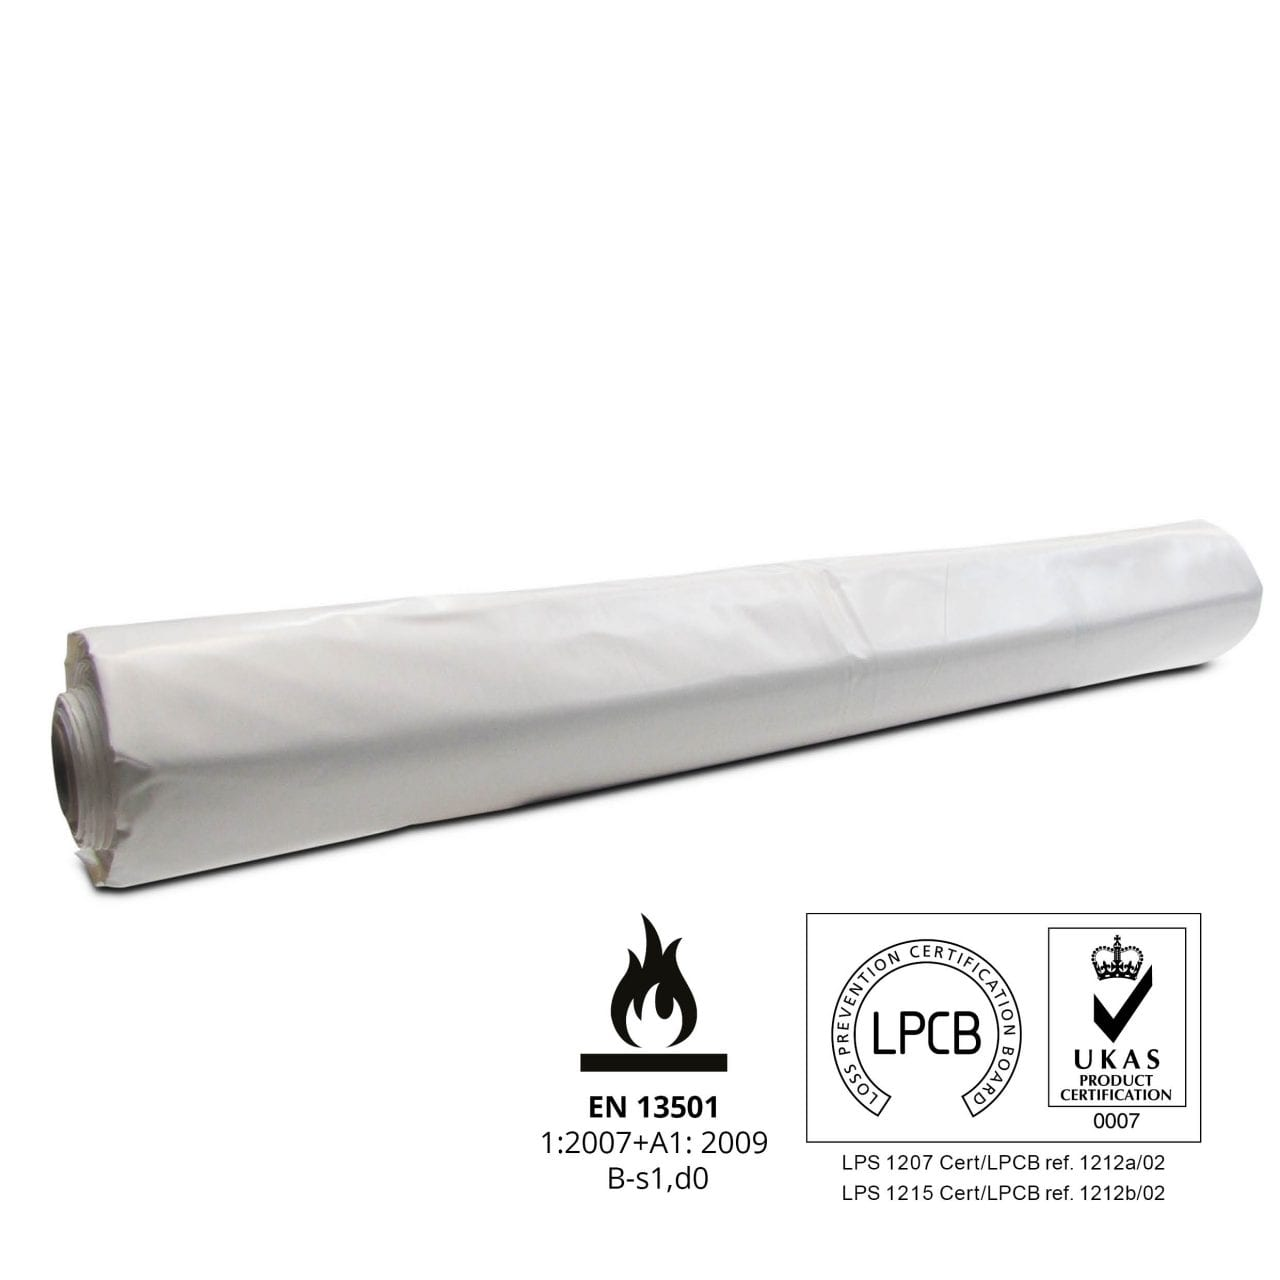 Scaffold shrink-wrap Tufcoat BC08 Flame retardant LPS certified